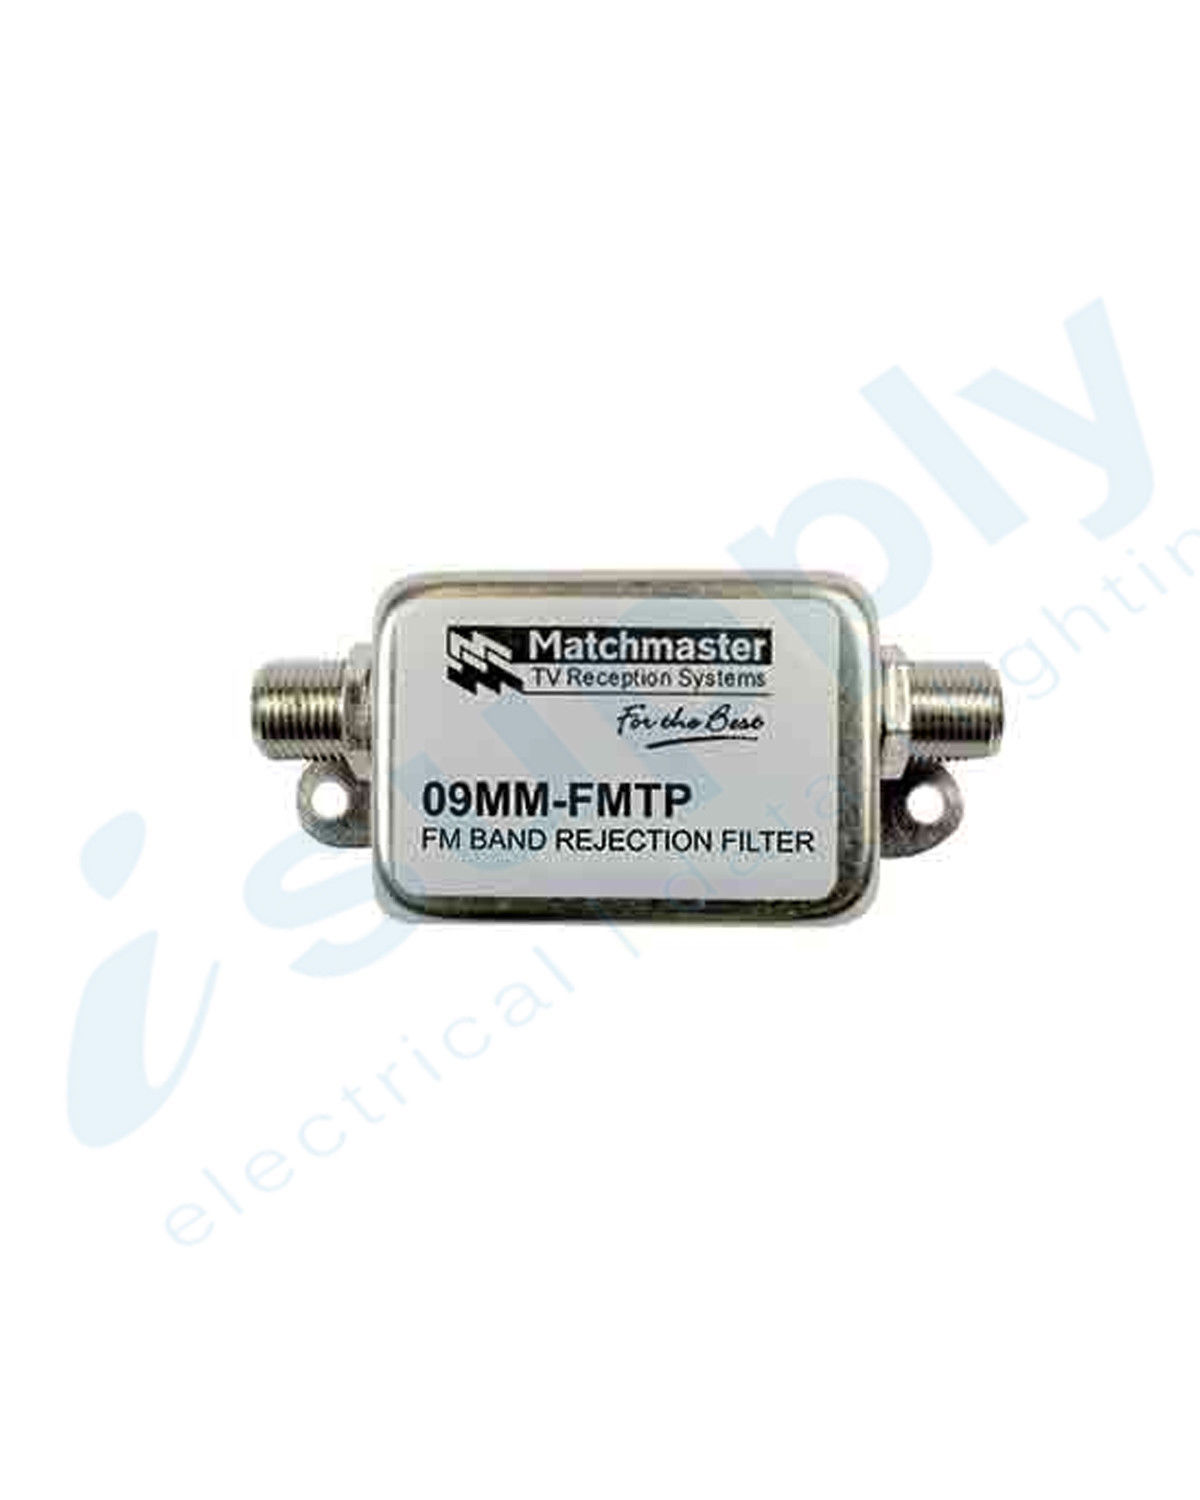 Matchmaster Fm Band Rejection Filter 09mm Fmtp Isupply Electrical Bandpass Reject A Circuit Is